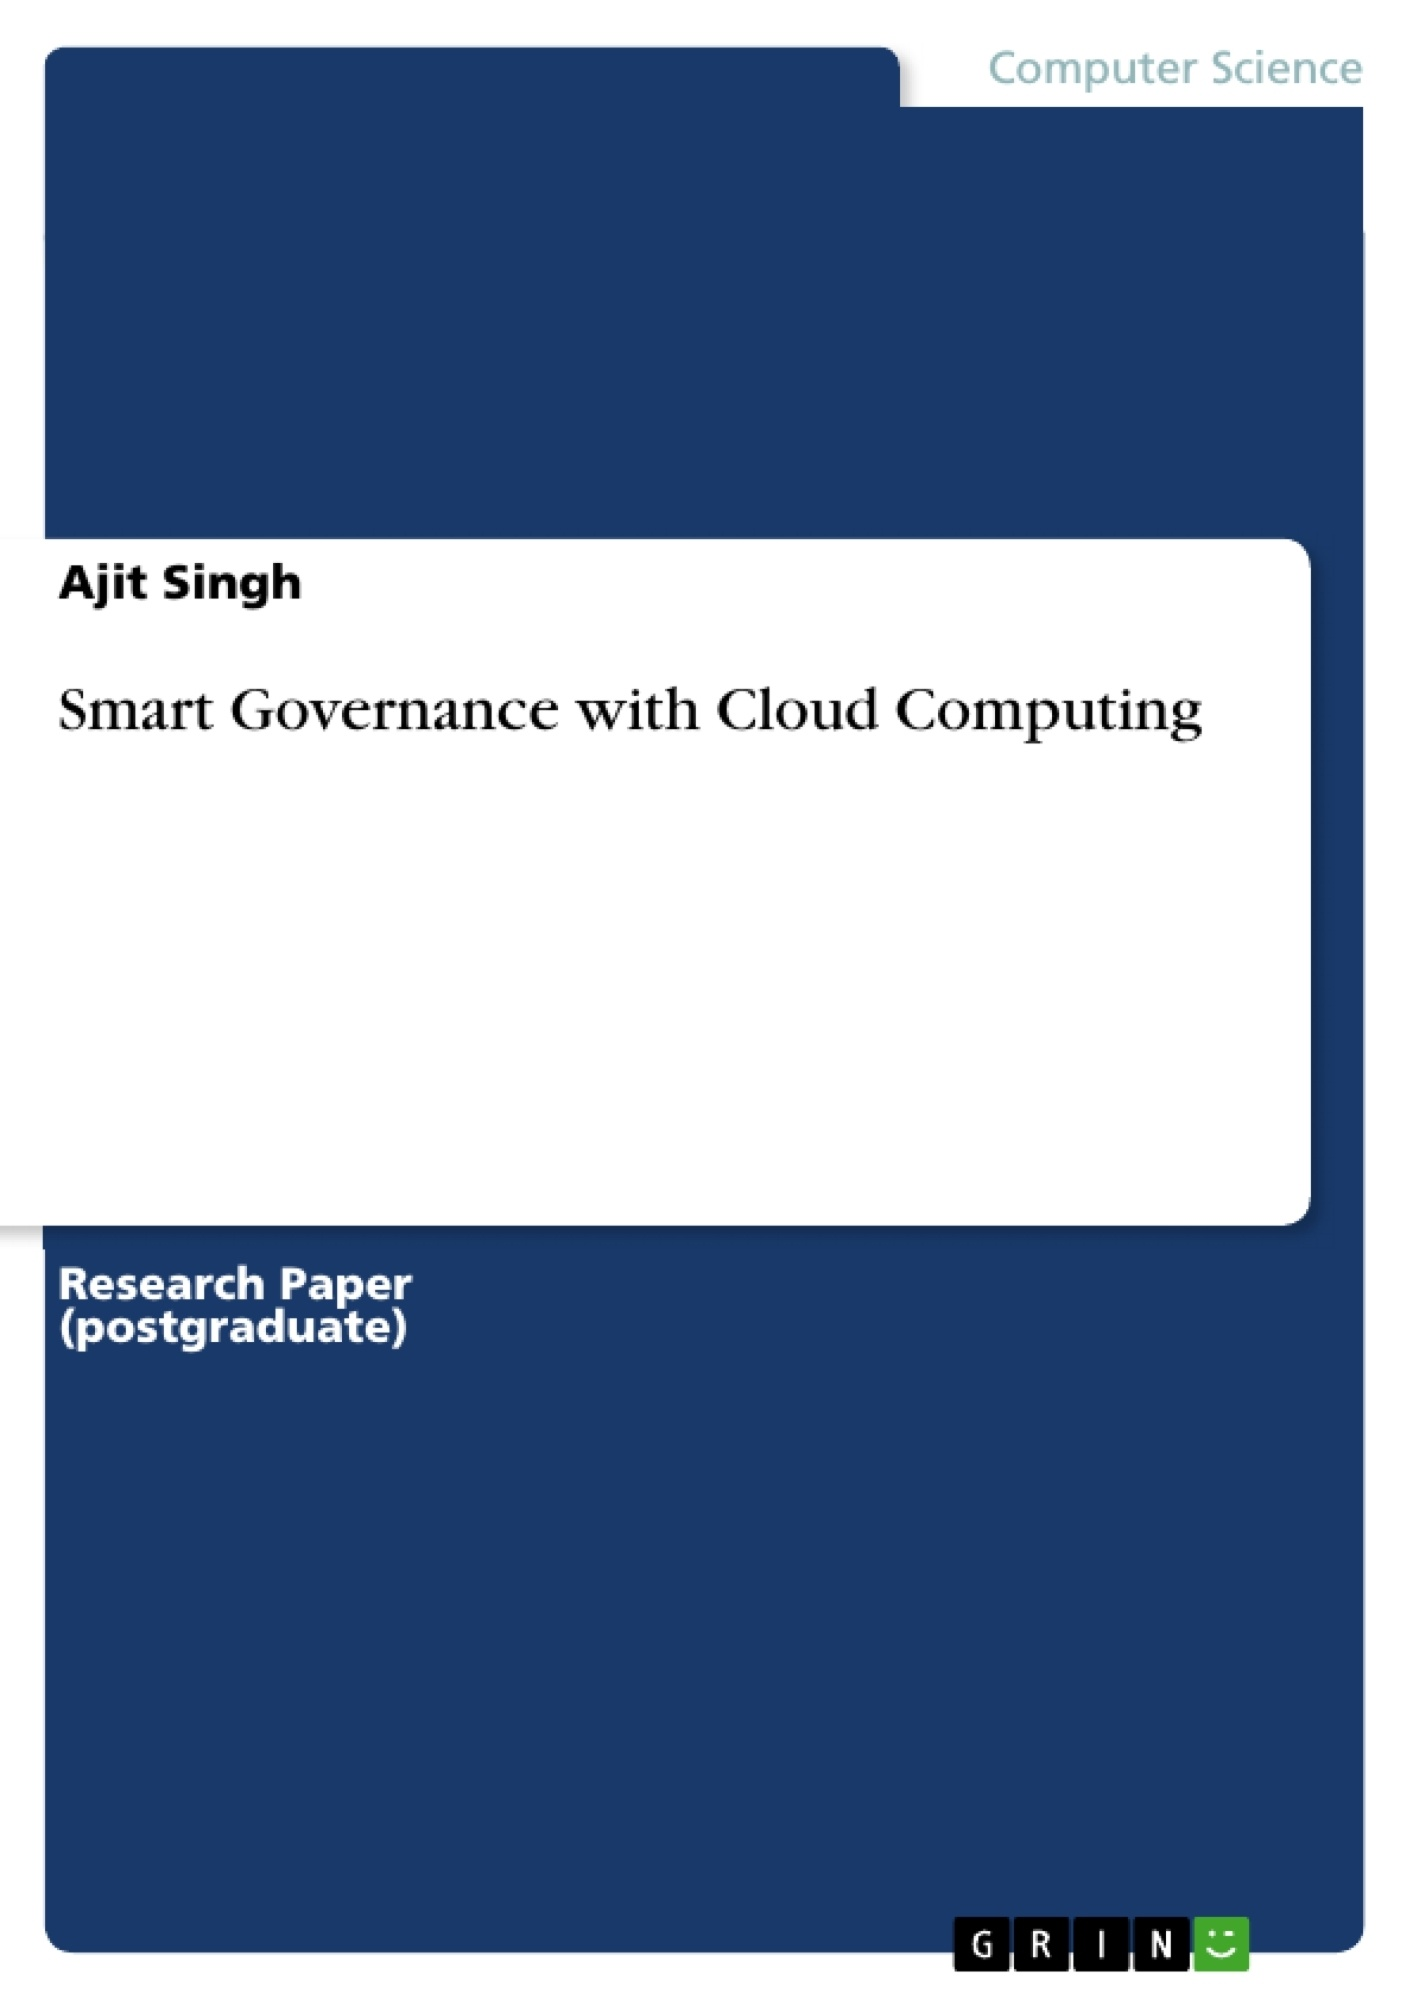 Title: Smart Governance with Cloud Computing